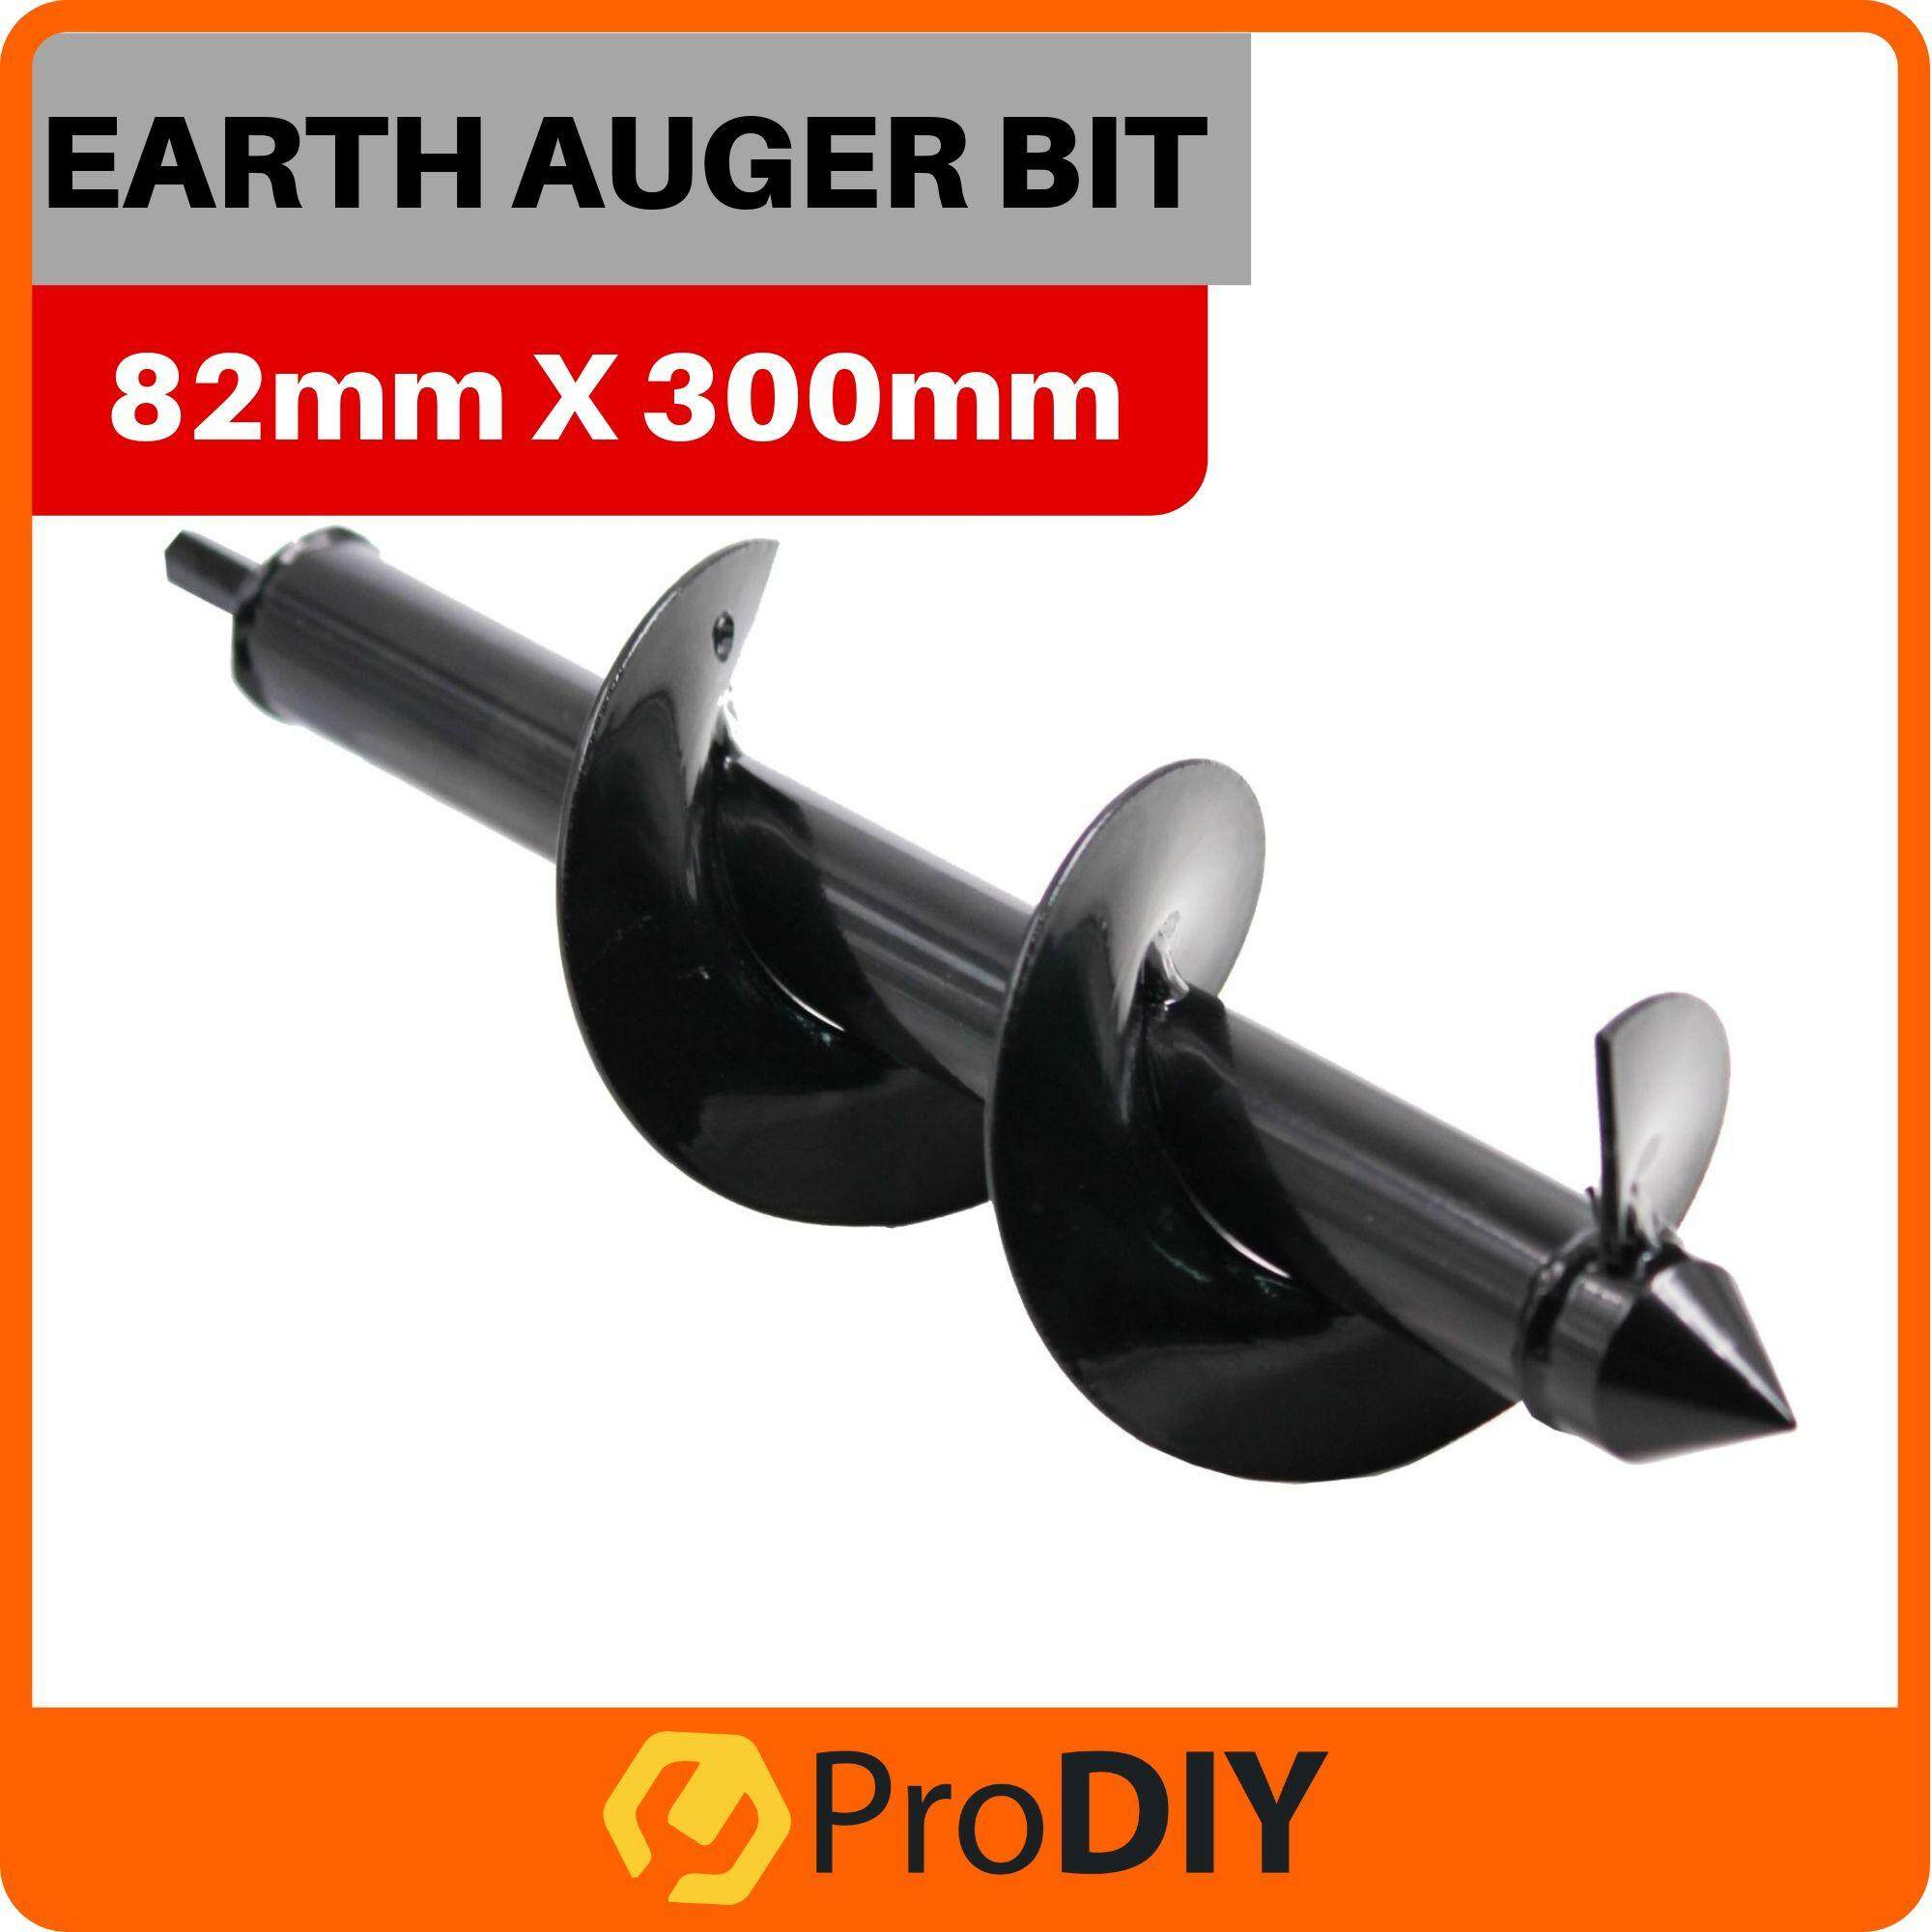 82mm X 300mm - Garden Auger Small Earth Planter Cordless Drill Bit Post Hole Digger